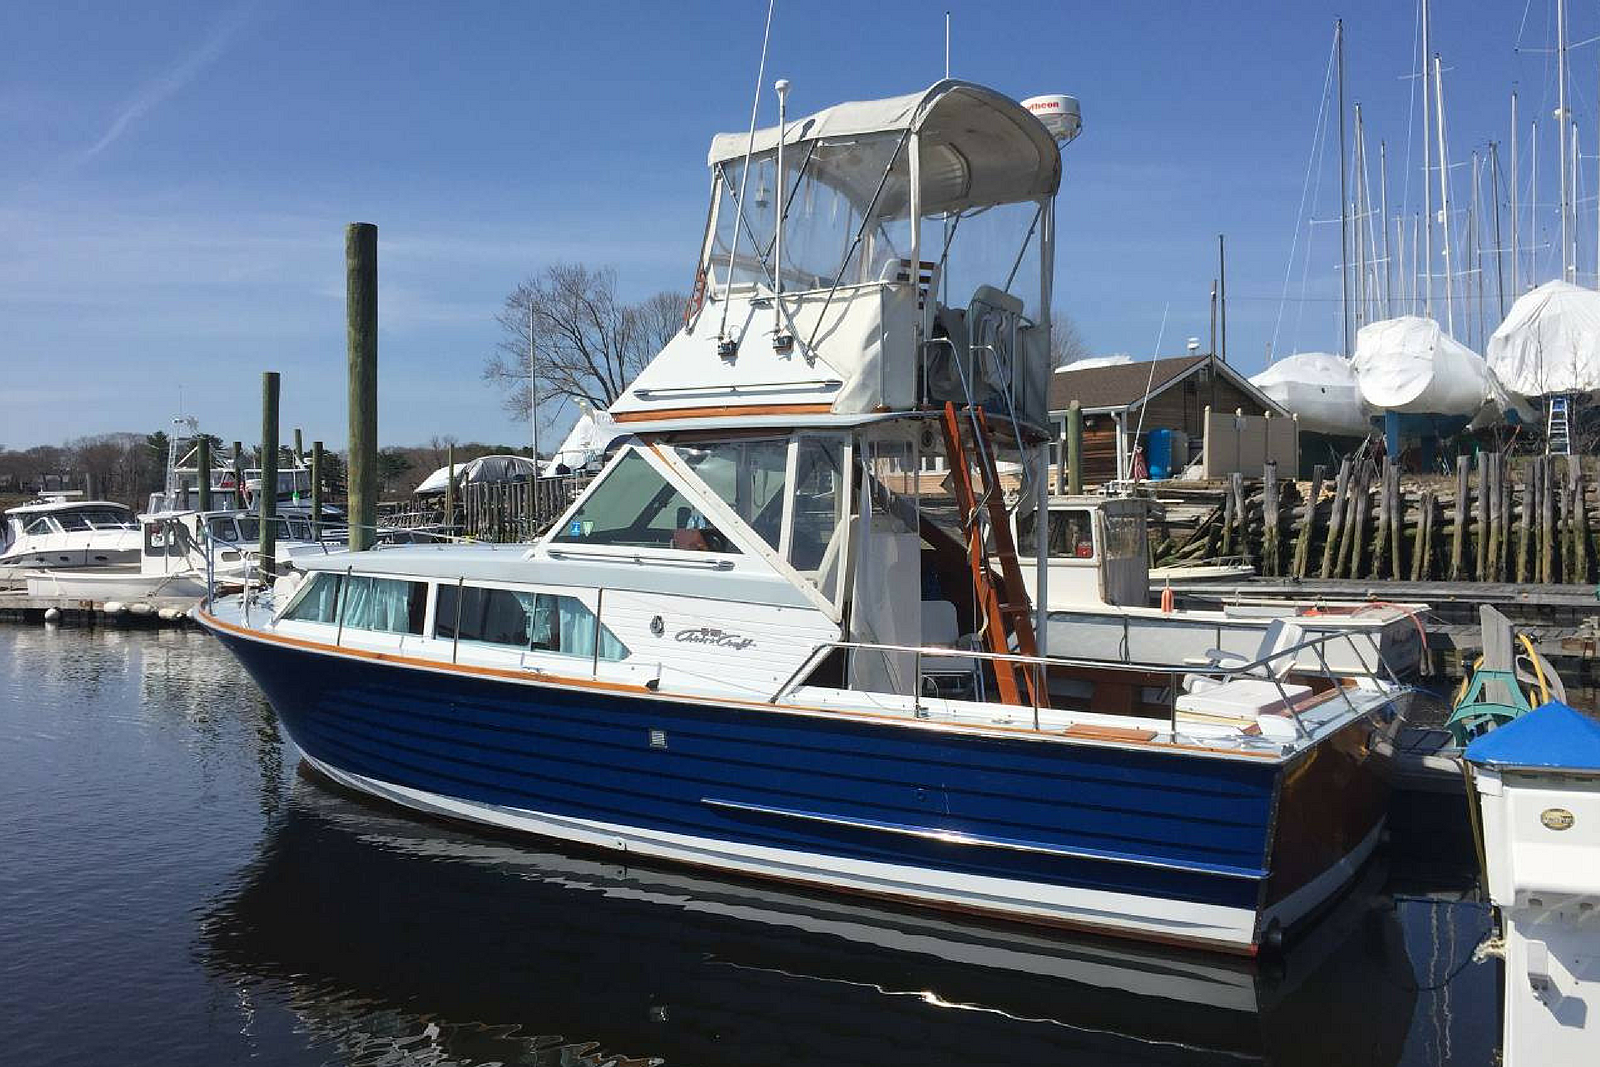 Want a Different Portland Experience? Stay Aboard this Classic Yacht